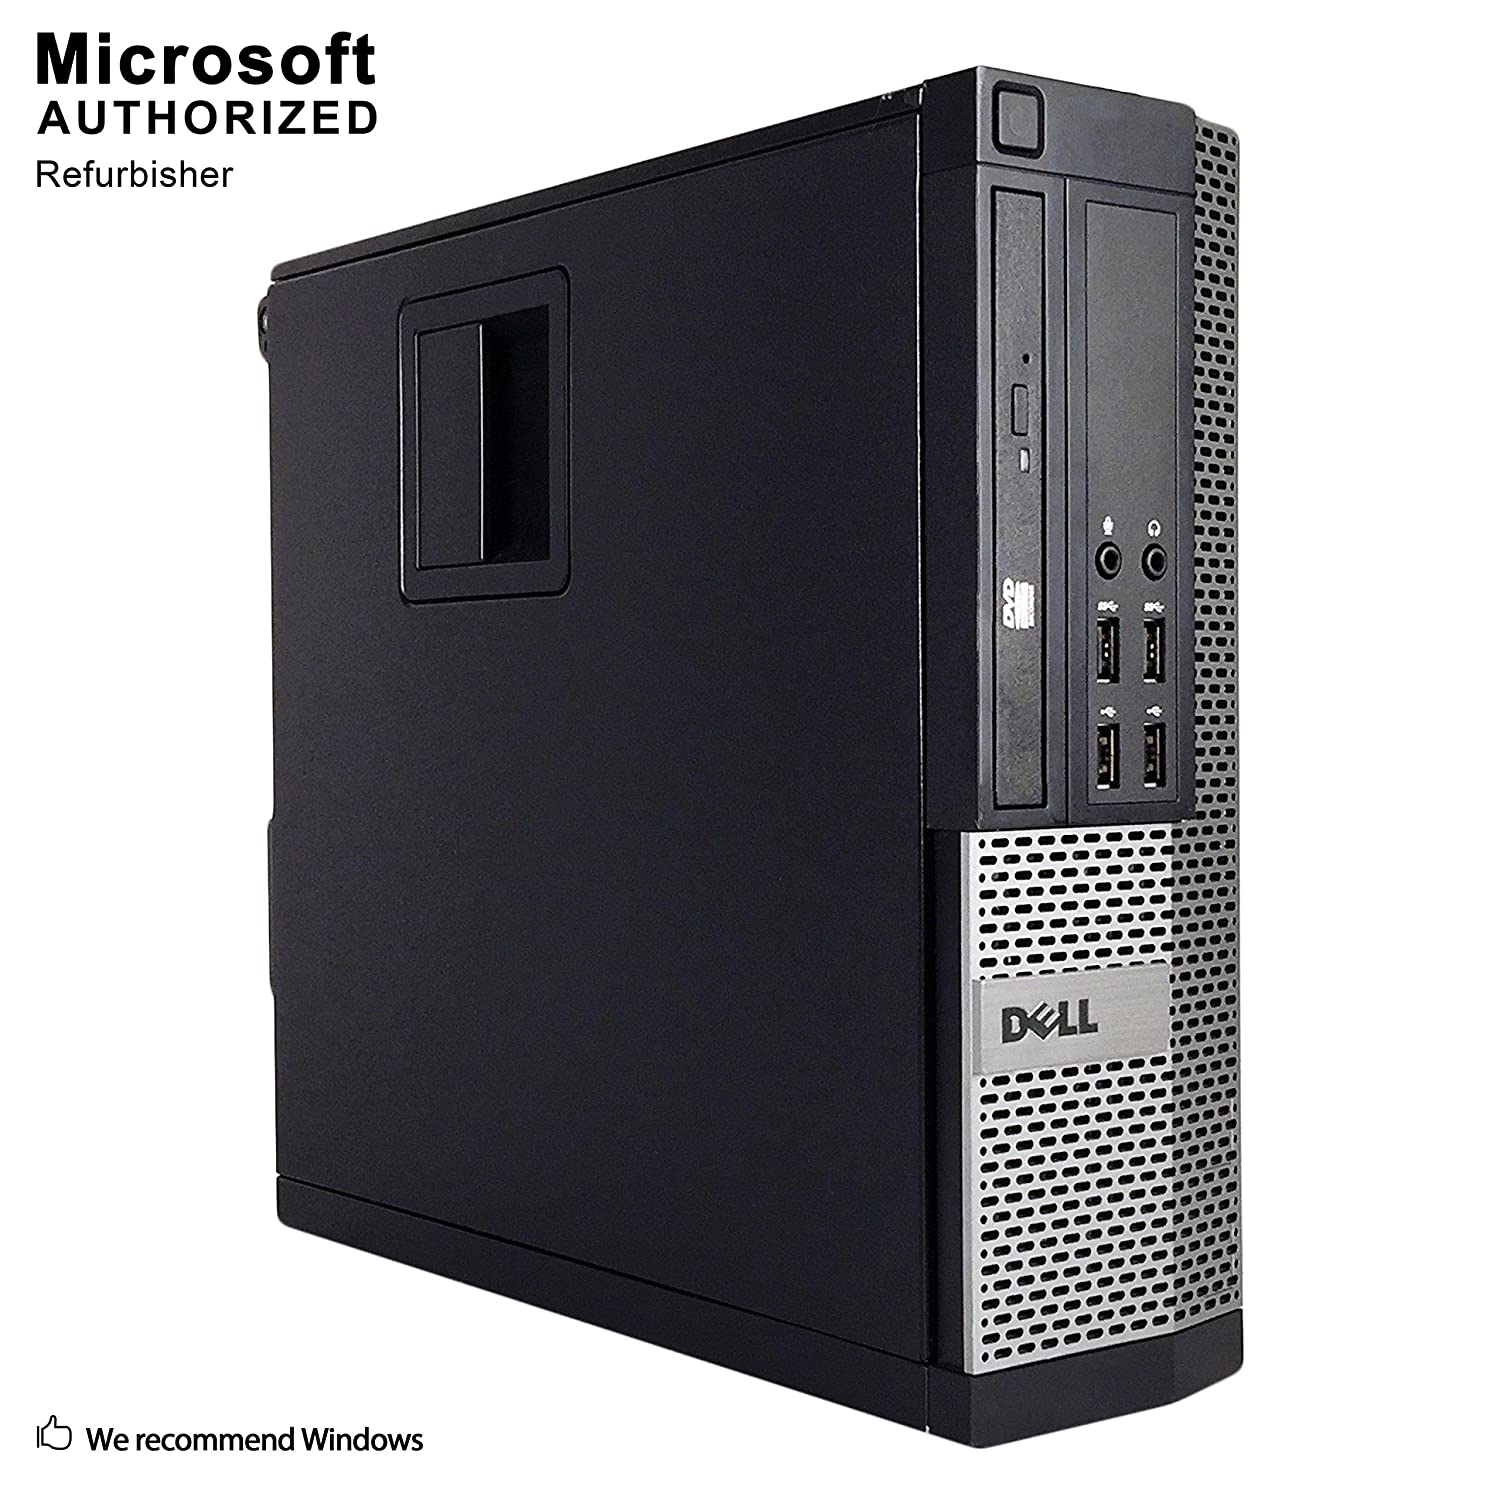 2018 DELL OPTIPLEX 7020 SFF Desktop Computer,Intel Core I5-4570 3.2GHz up to 3.6GHz, 16GB DDR3, 2TB HDD, DVD, WIFI, HDMI, VGA, Display Port, USB 3.0, Bluetooth 4.0, Win10Pro64 (Renewed)